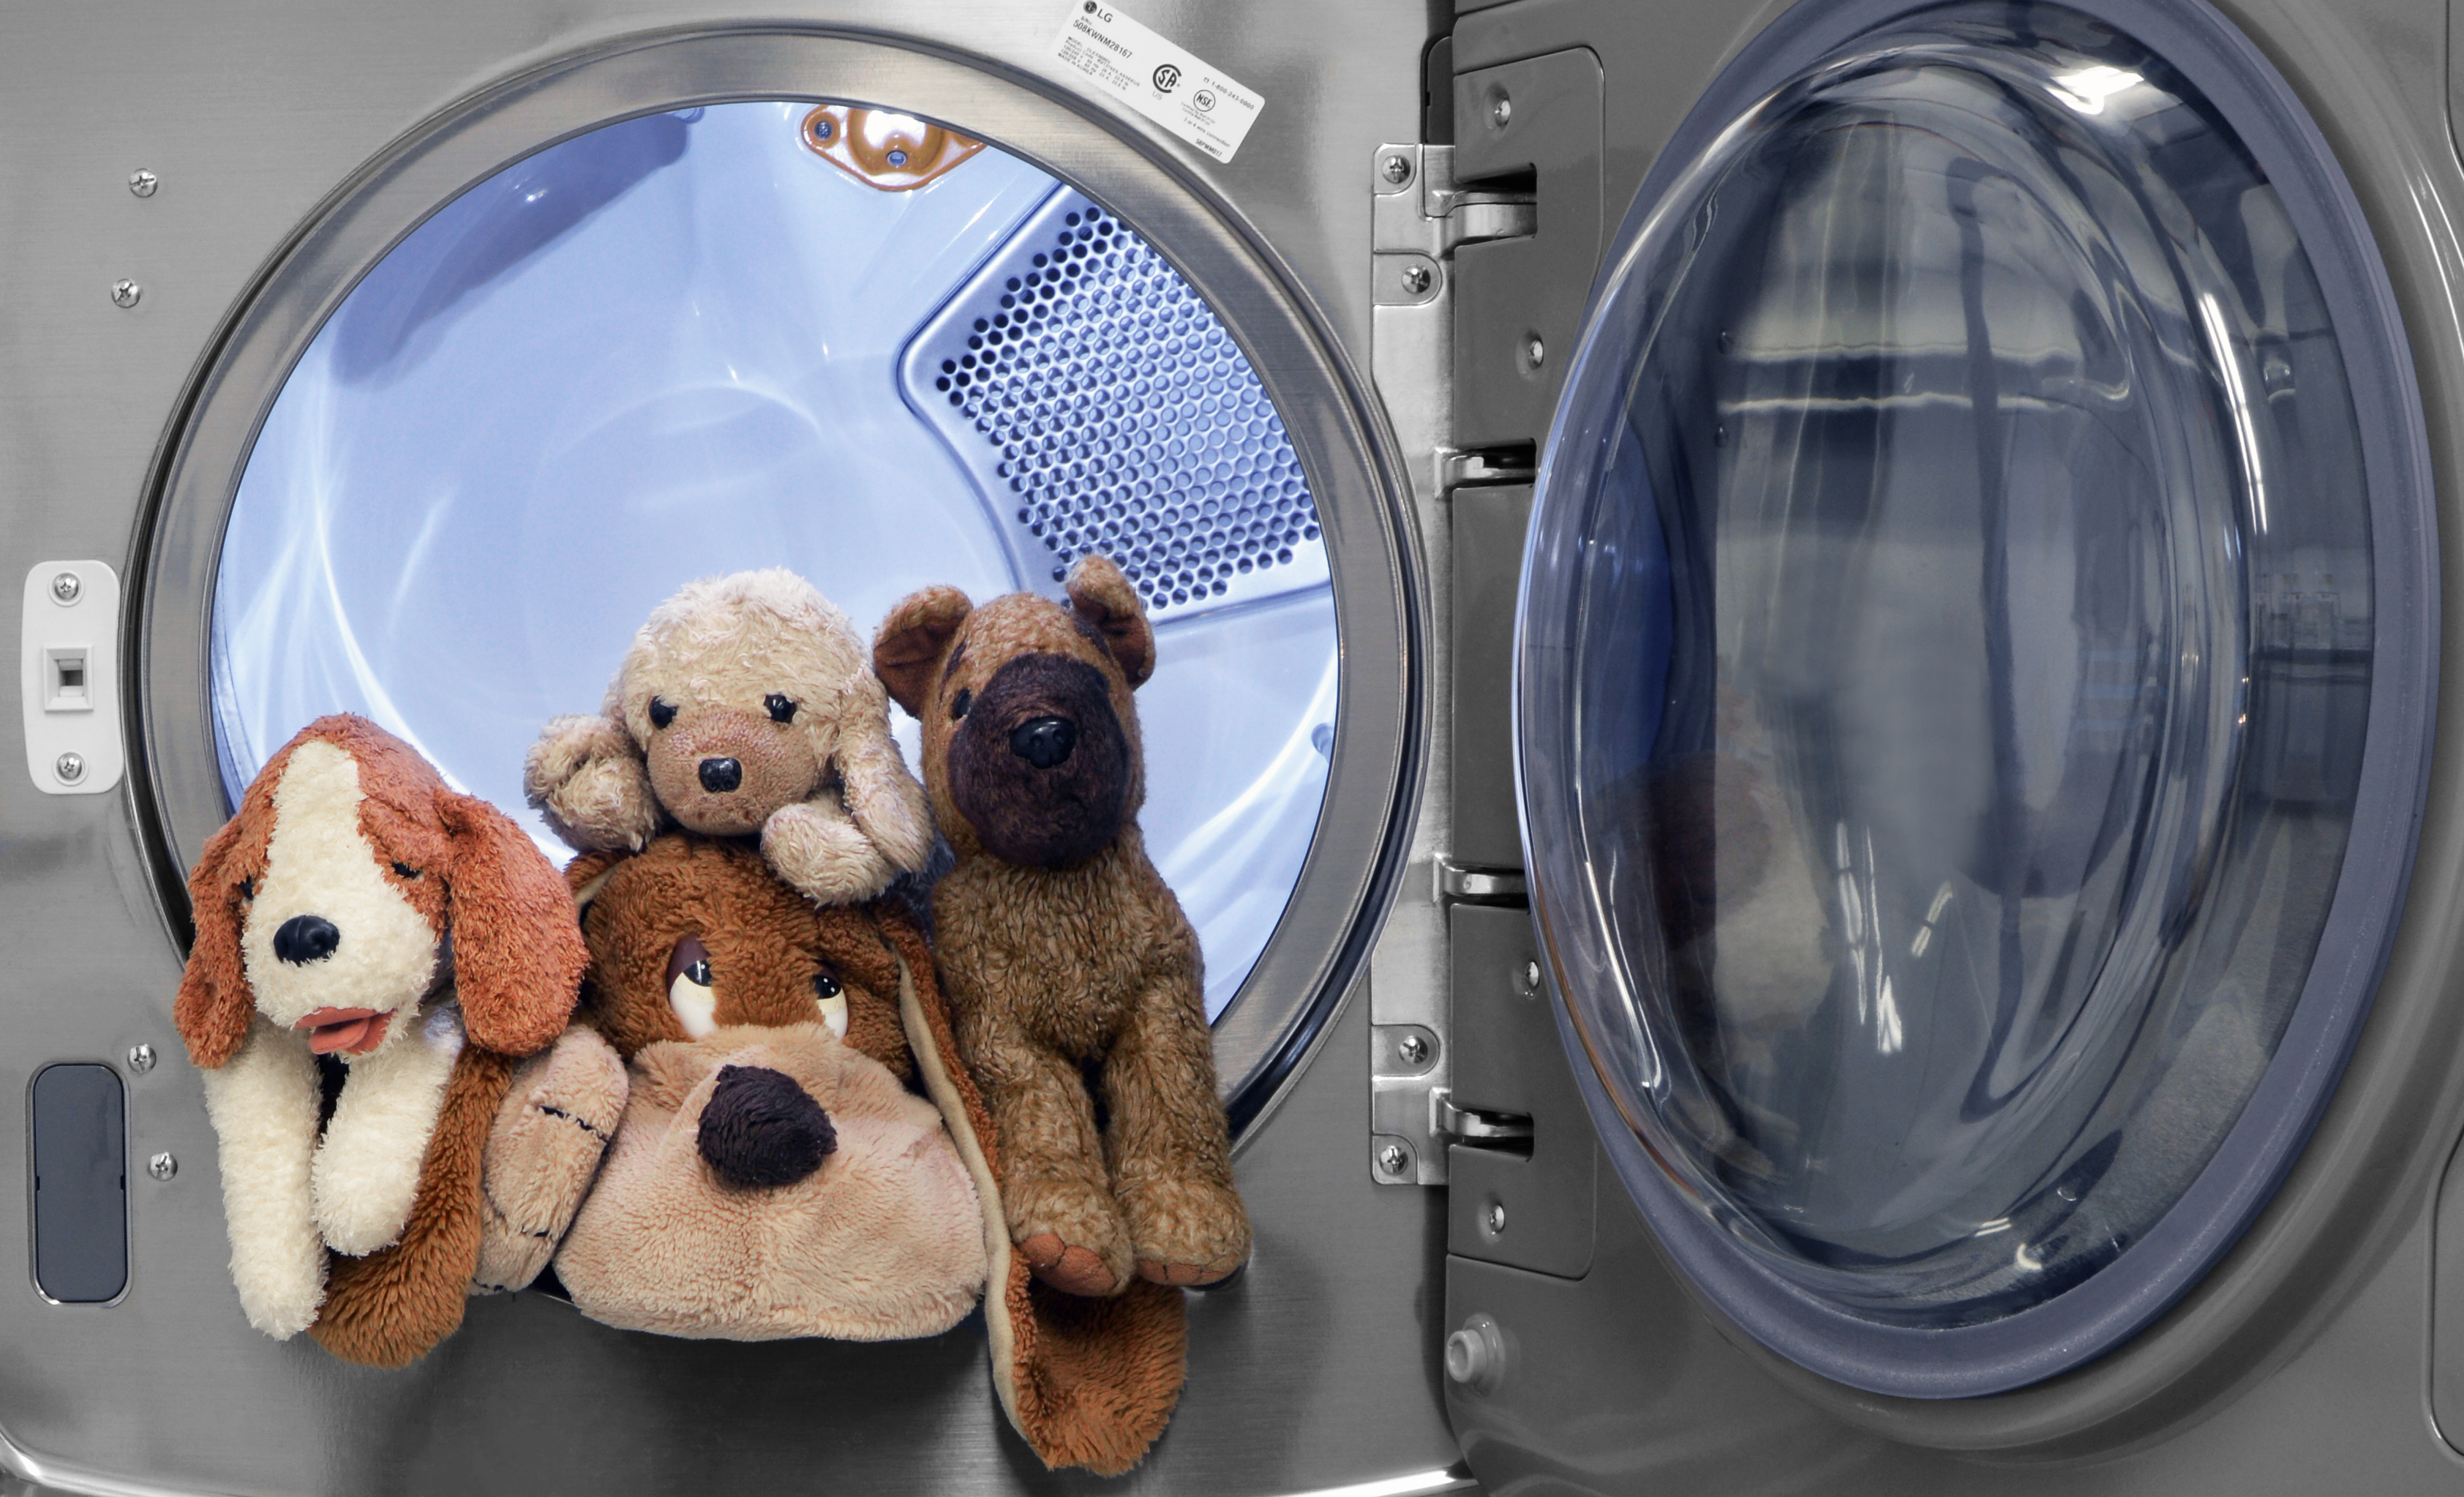 How To Wash Stuffed Animals Reviewed Com Laundry